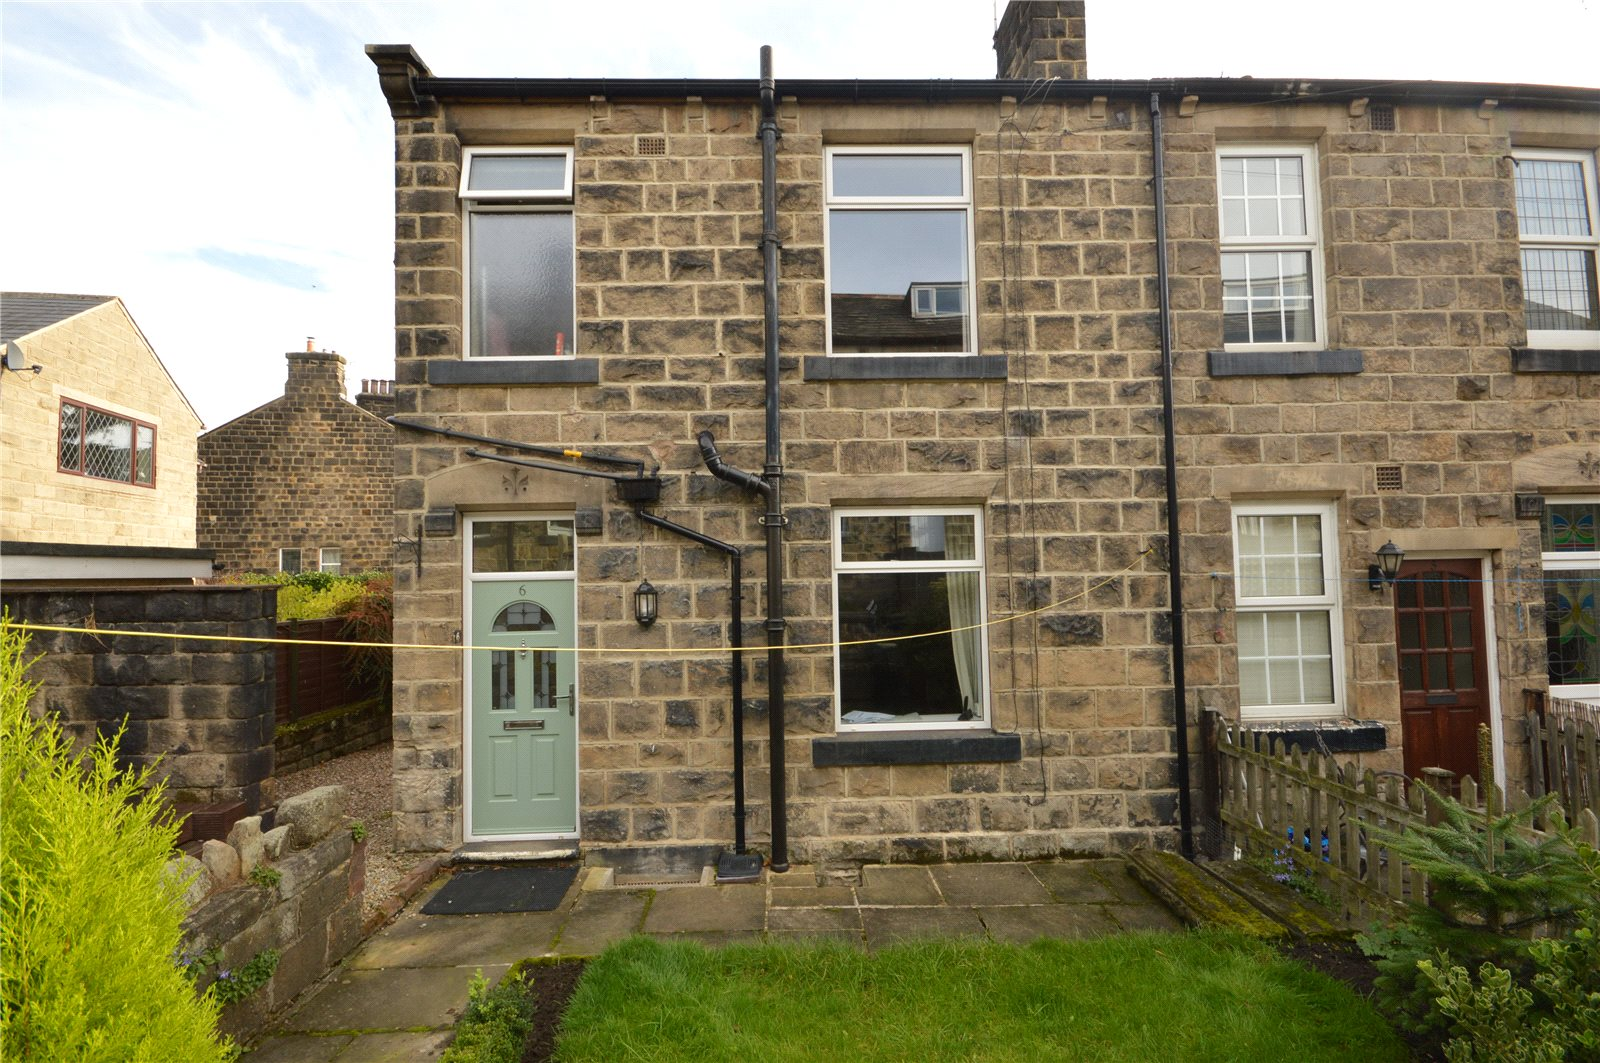 Property for sale in Guiseley